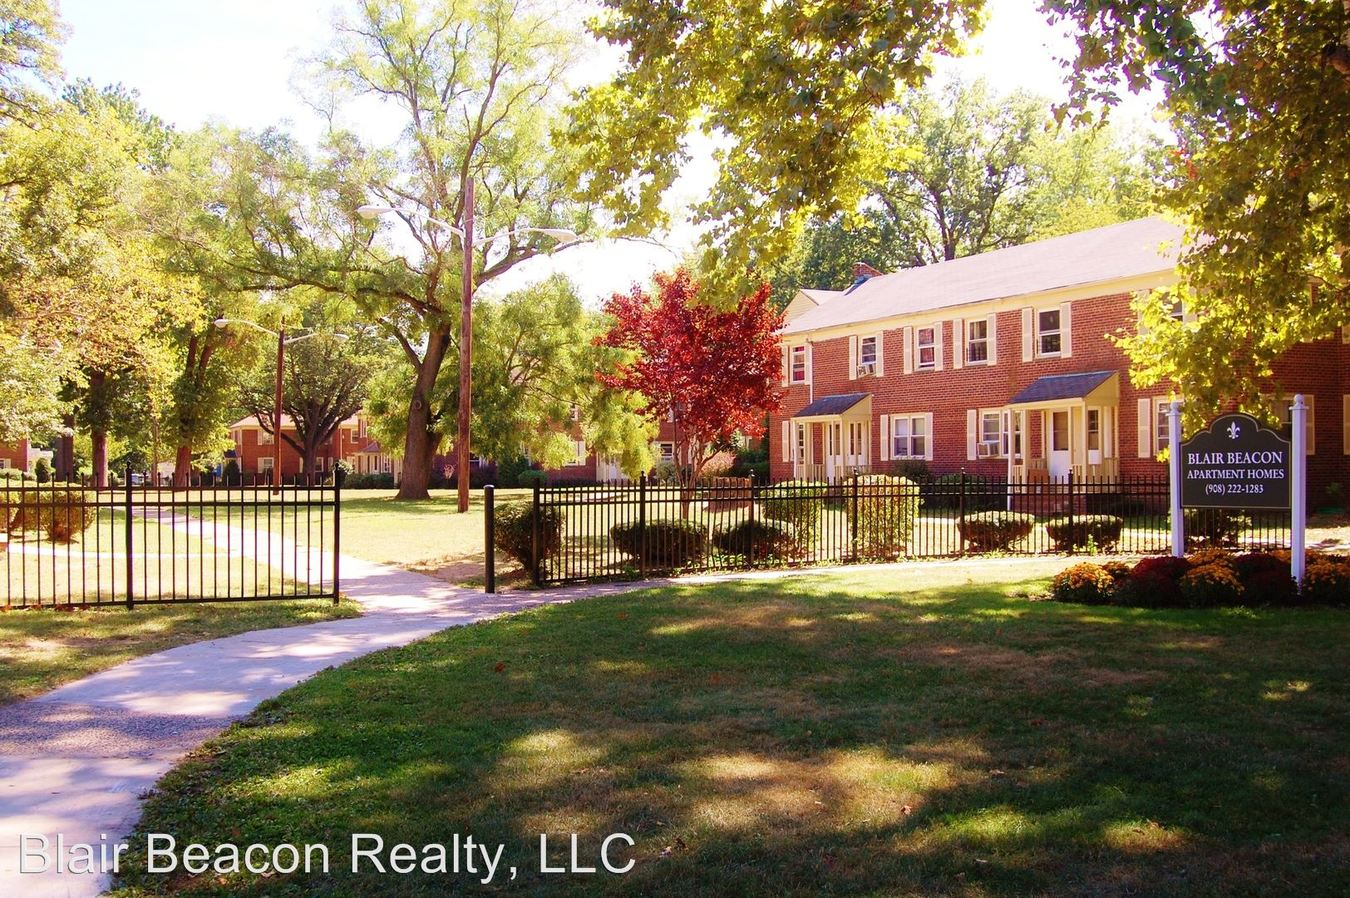 2 Bedrooms 1 Bathroom Apartment for rent at 750 East Front St in Plainfield, NJ